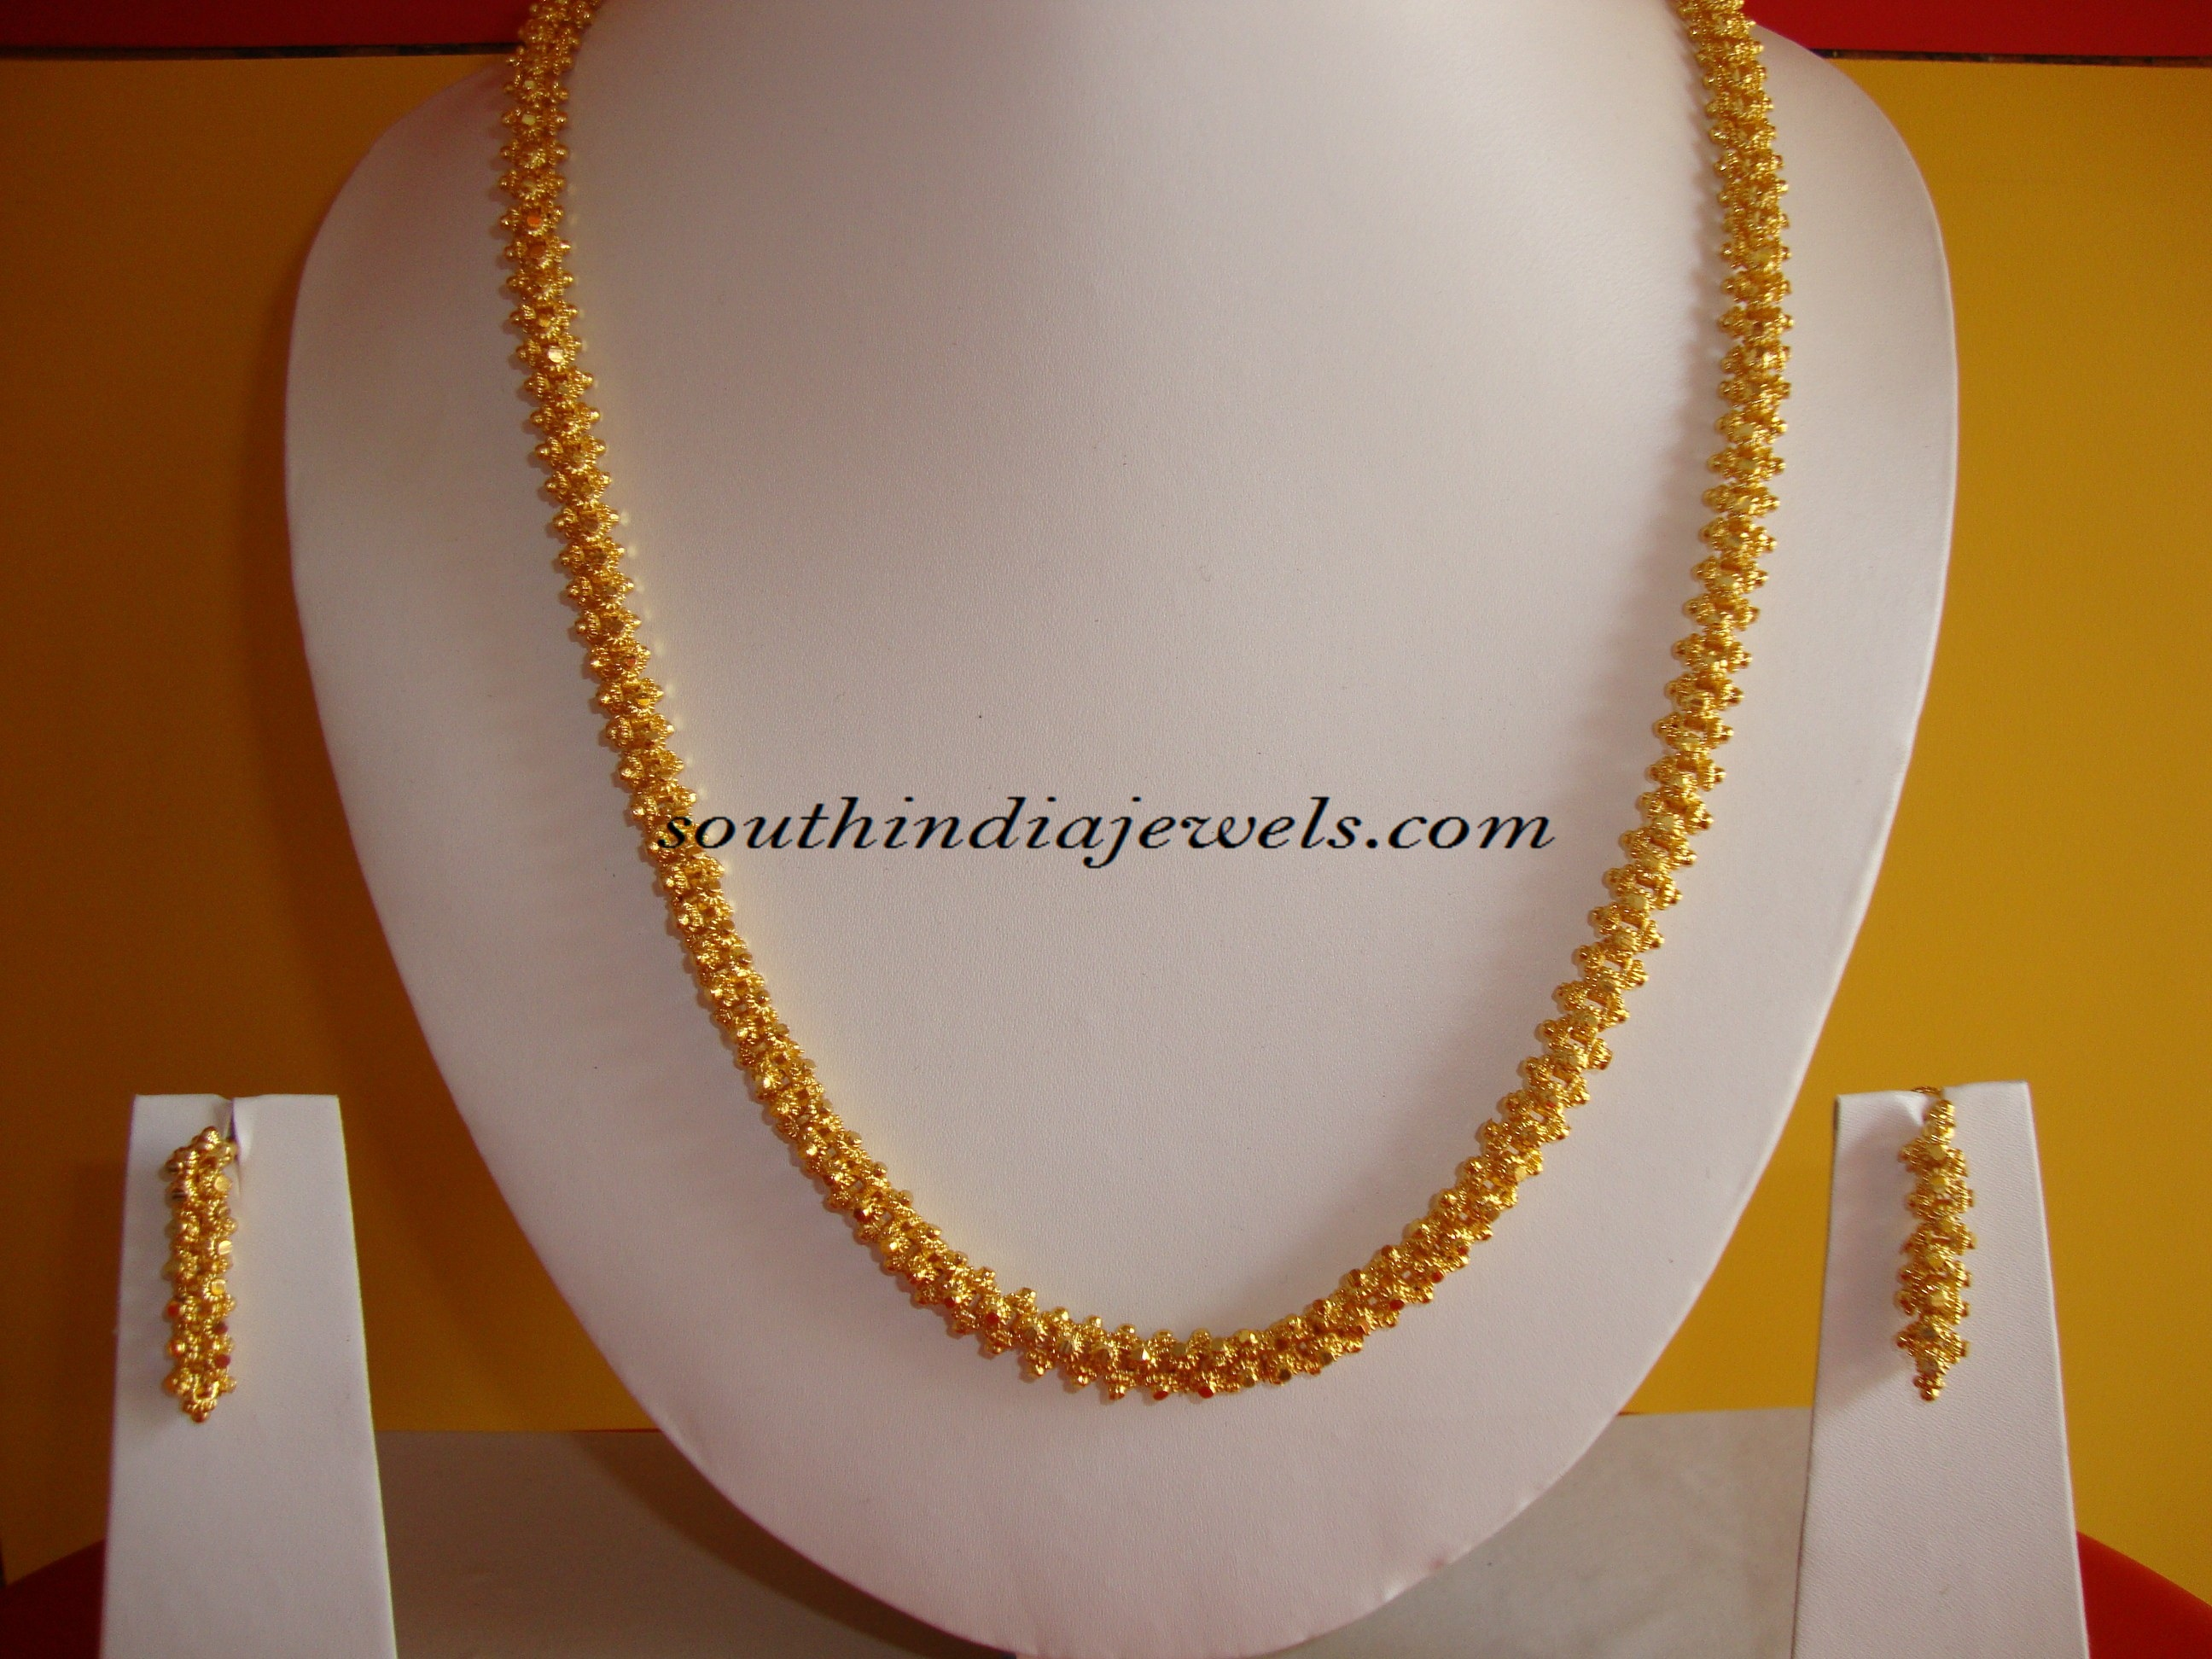 One gram gold jewelry chain design ~ South India Jewels